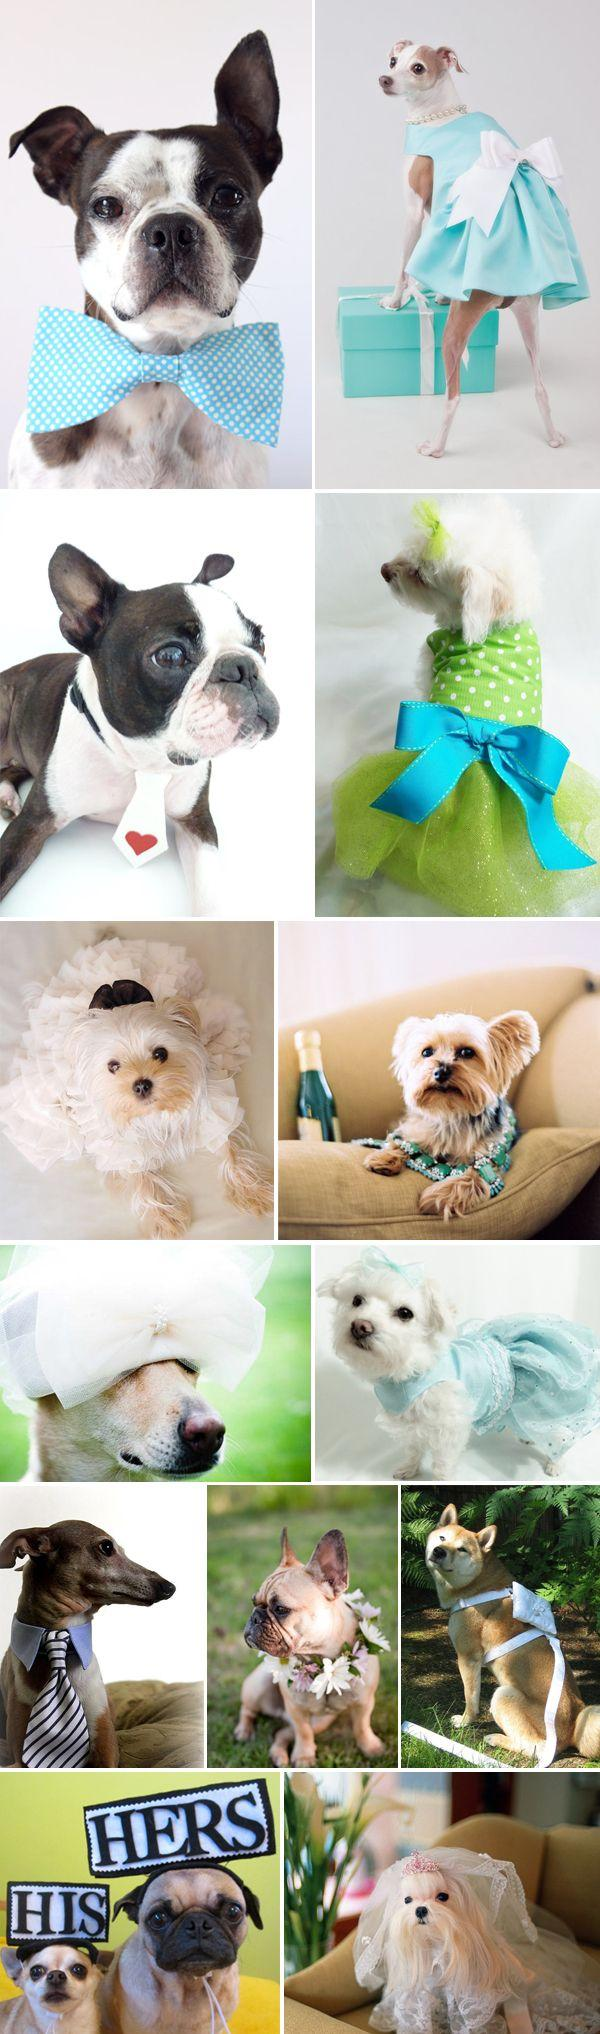 Mariage - Super Cute! Wedding Dogs